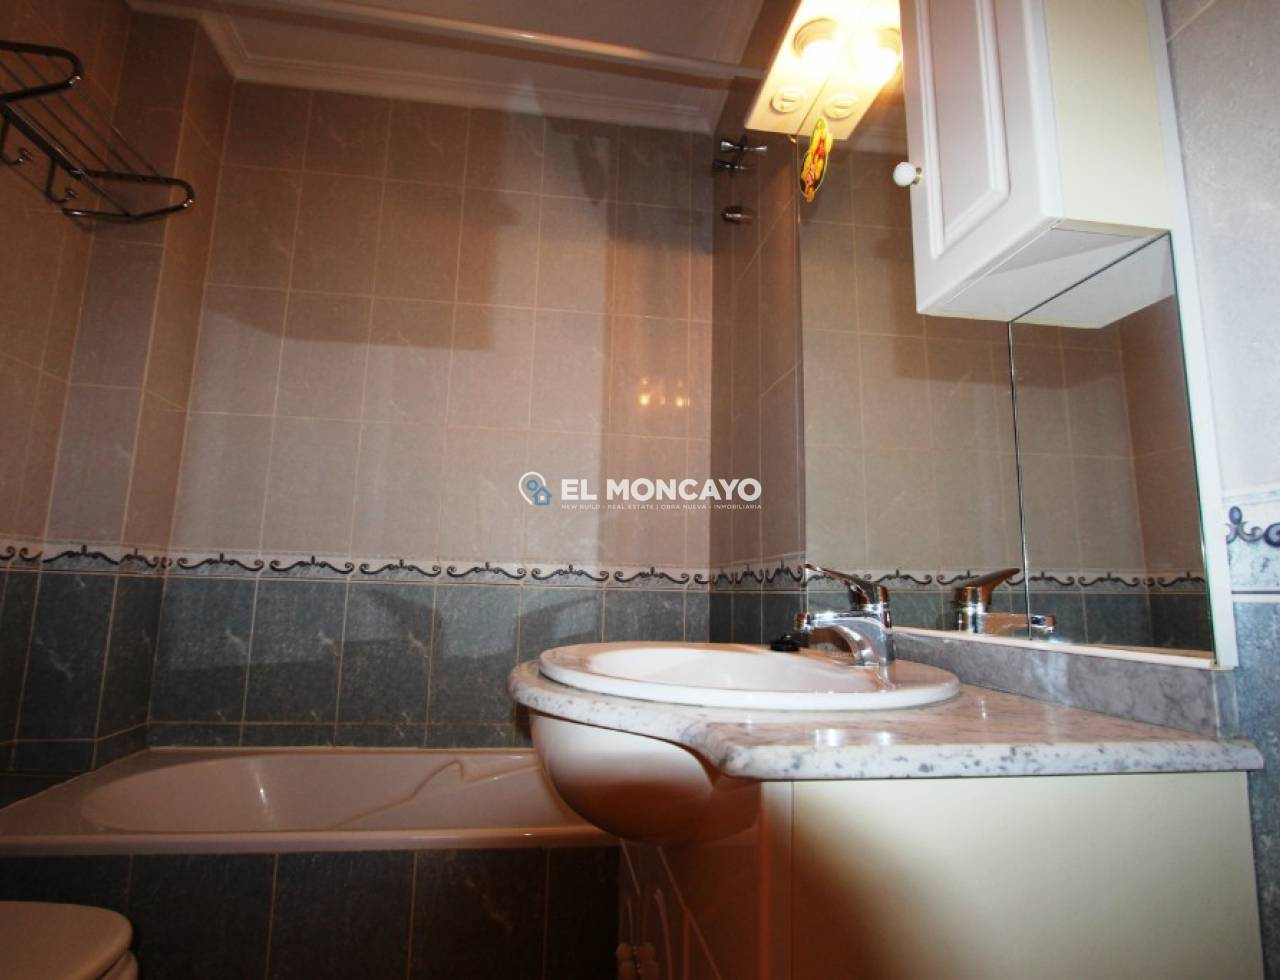 Sale - Apartment - Guardamar del Segura - Center